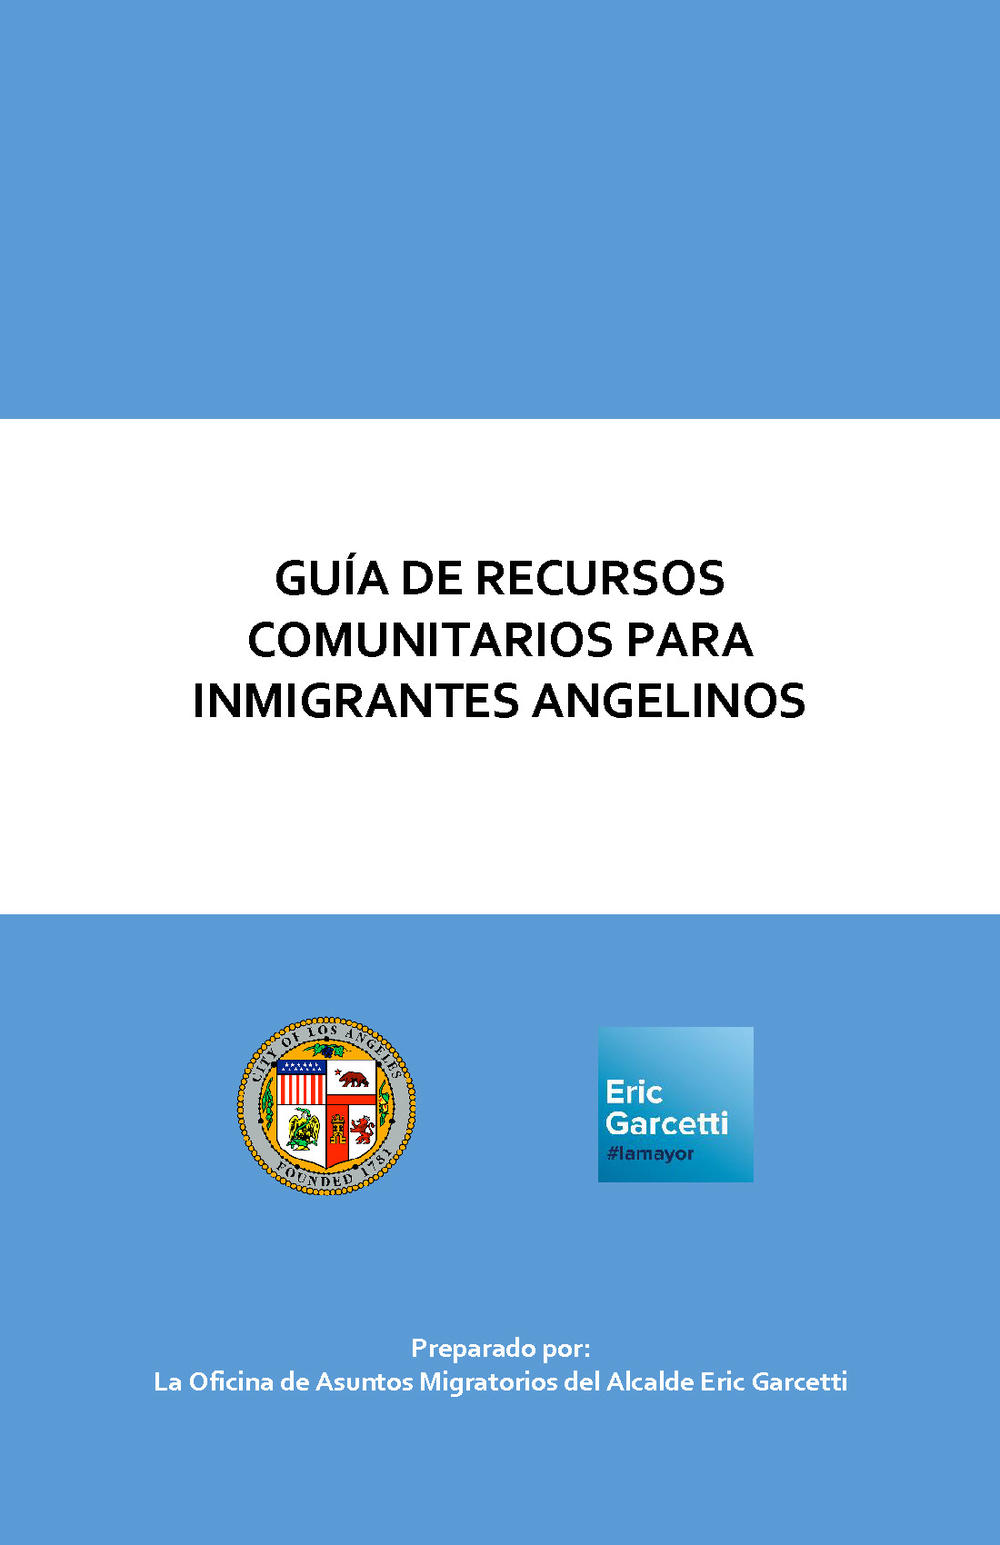 Link to Spanish Immigrant Resources Guide